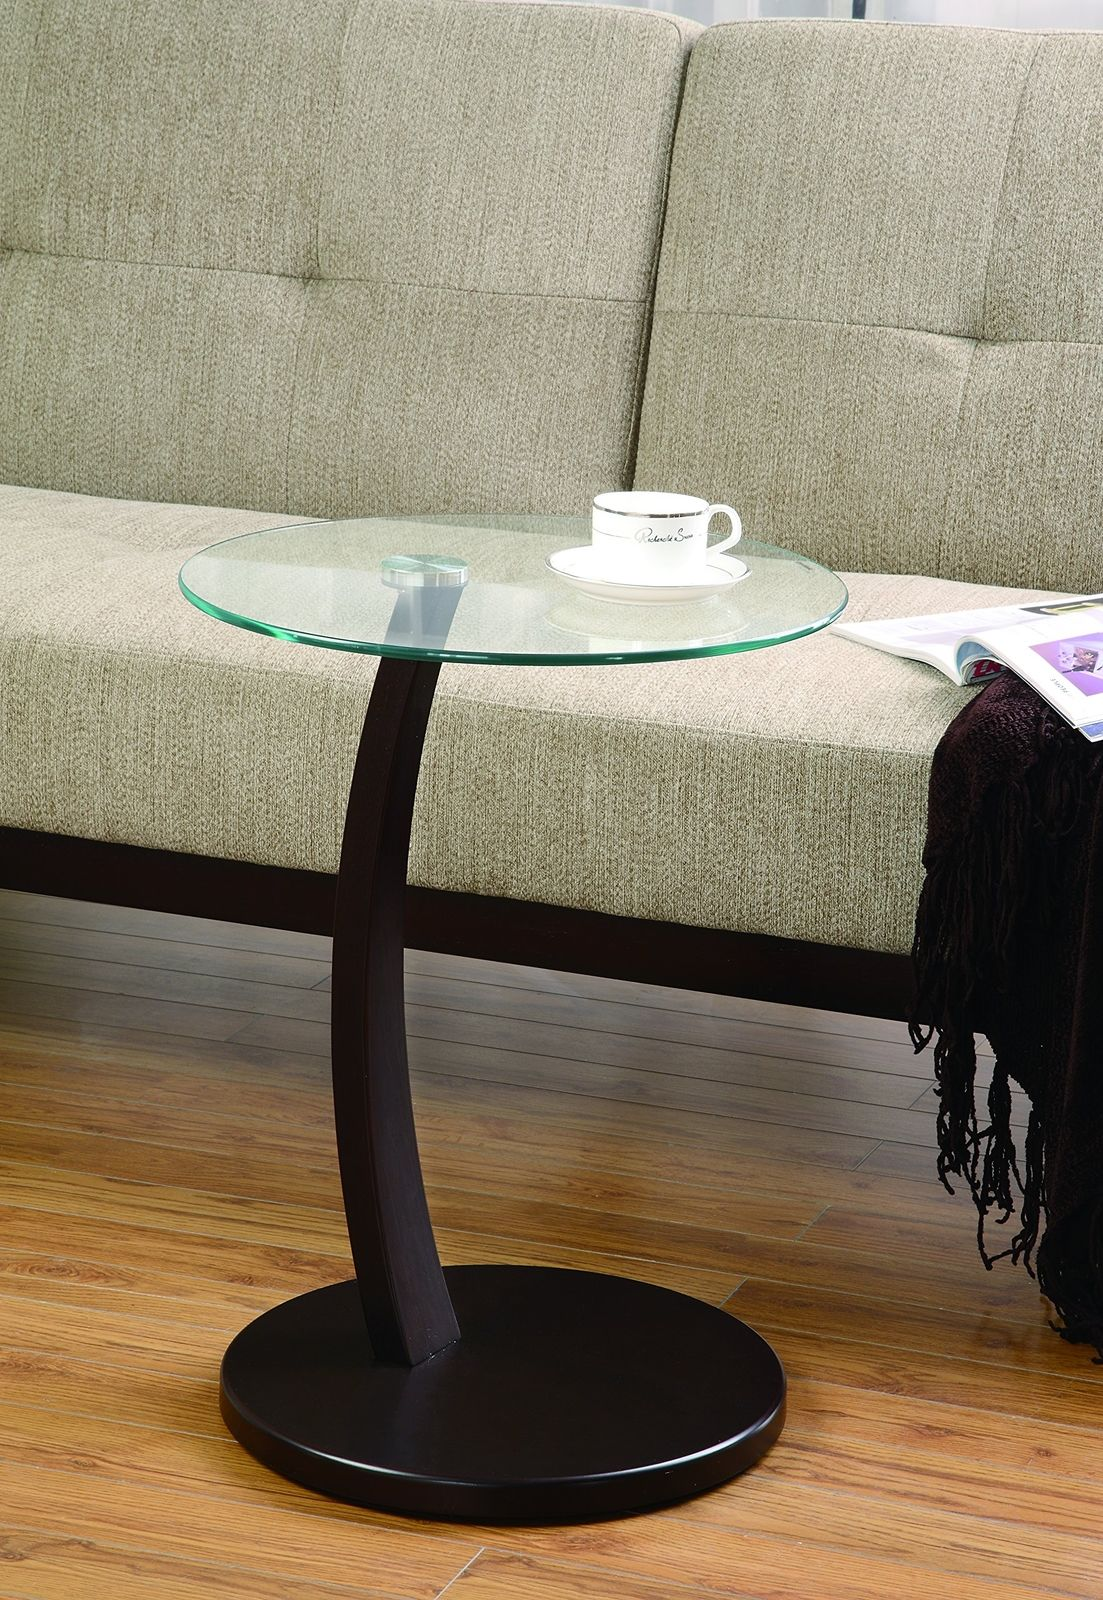 monarch specialties cappuccino bentwood accent table with tempered glass stock ashley furniture sectional couch deck cover moroccan tile black outdoor side marble and wood coffee